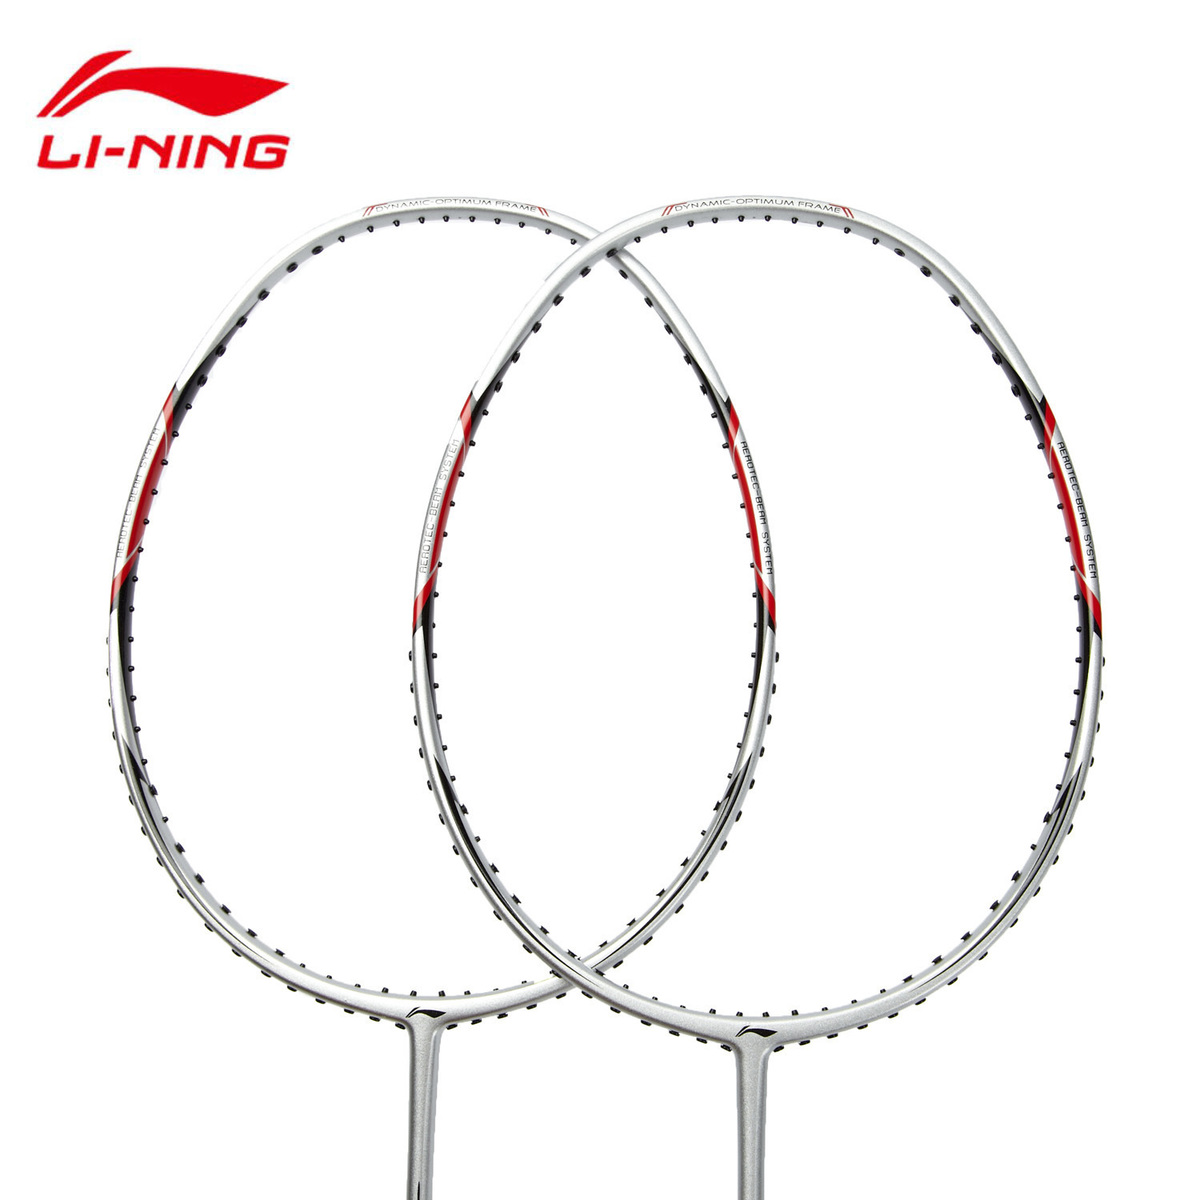 1Pair Lining Badminton Rackets Super Light Full Carbon Fiber Ball Control Type Li Ning AYPG354 With